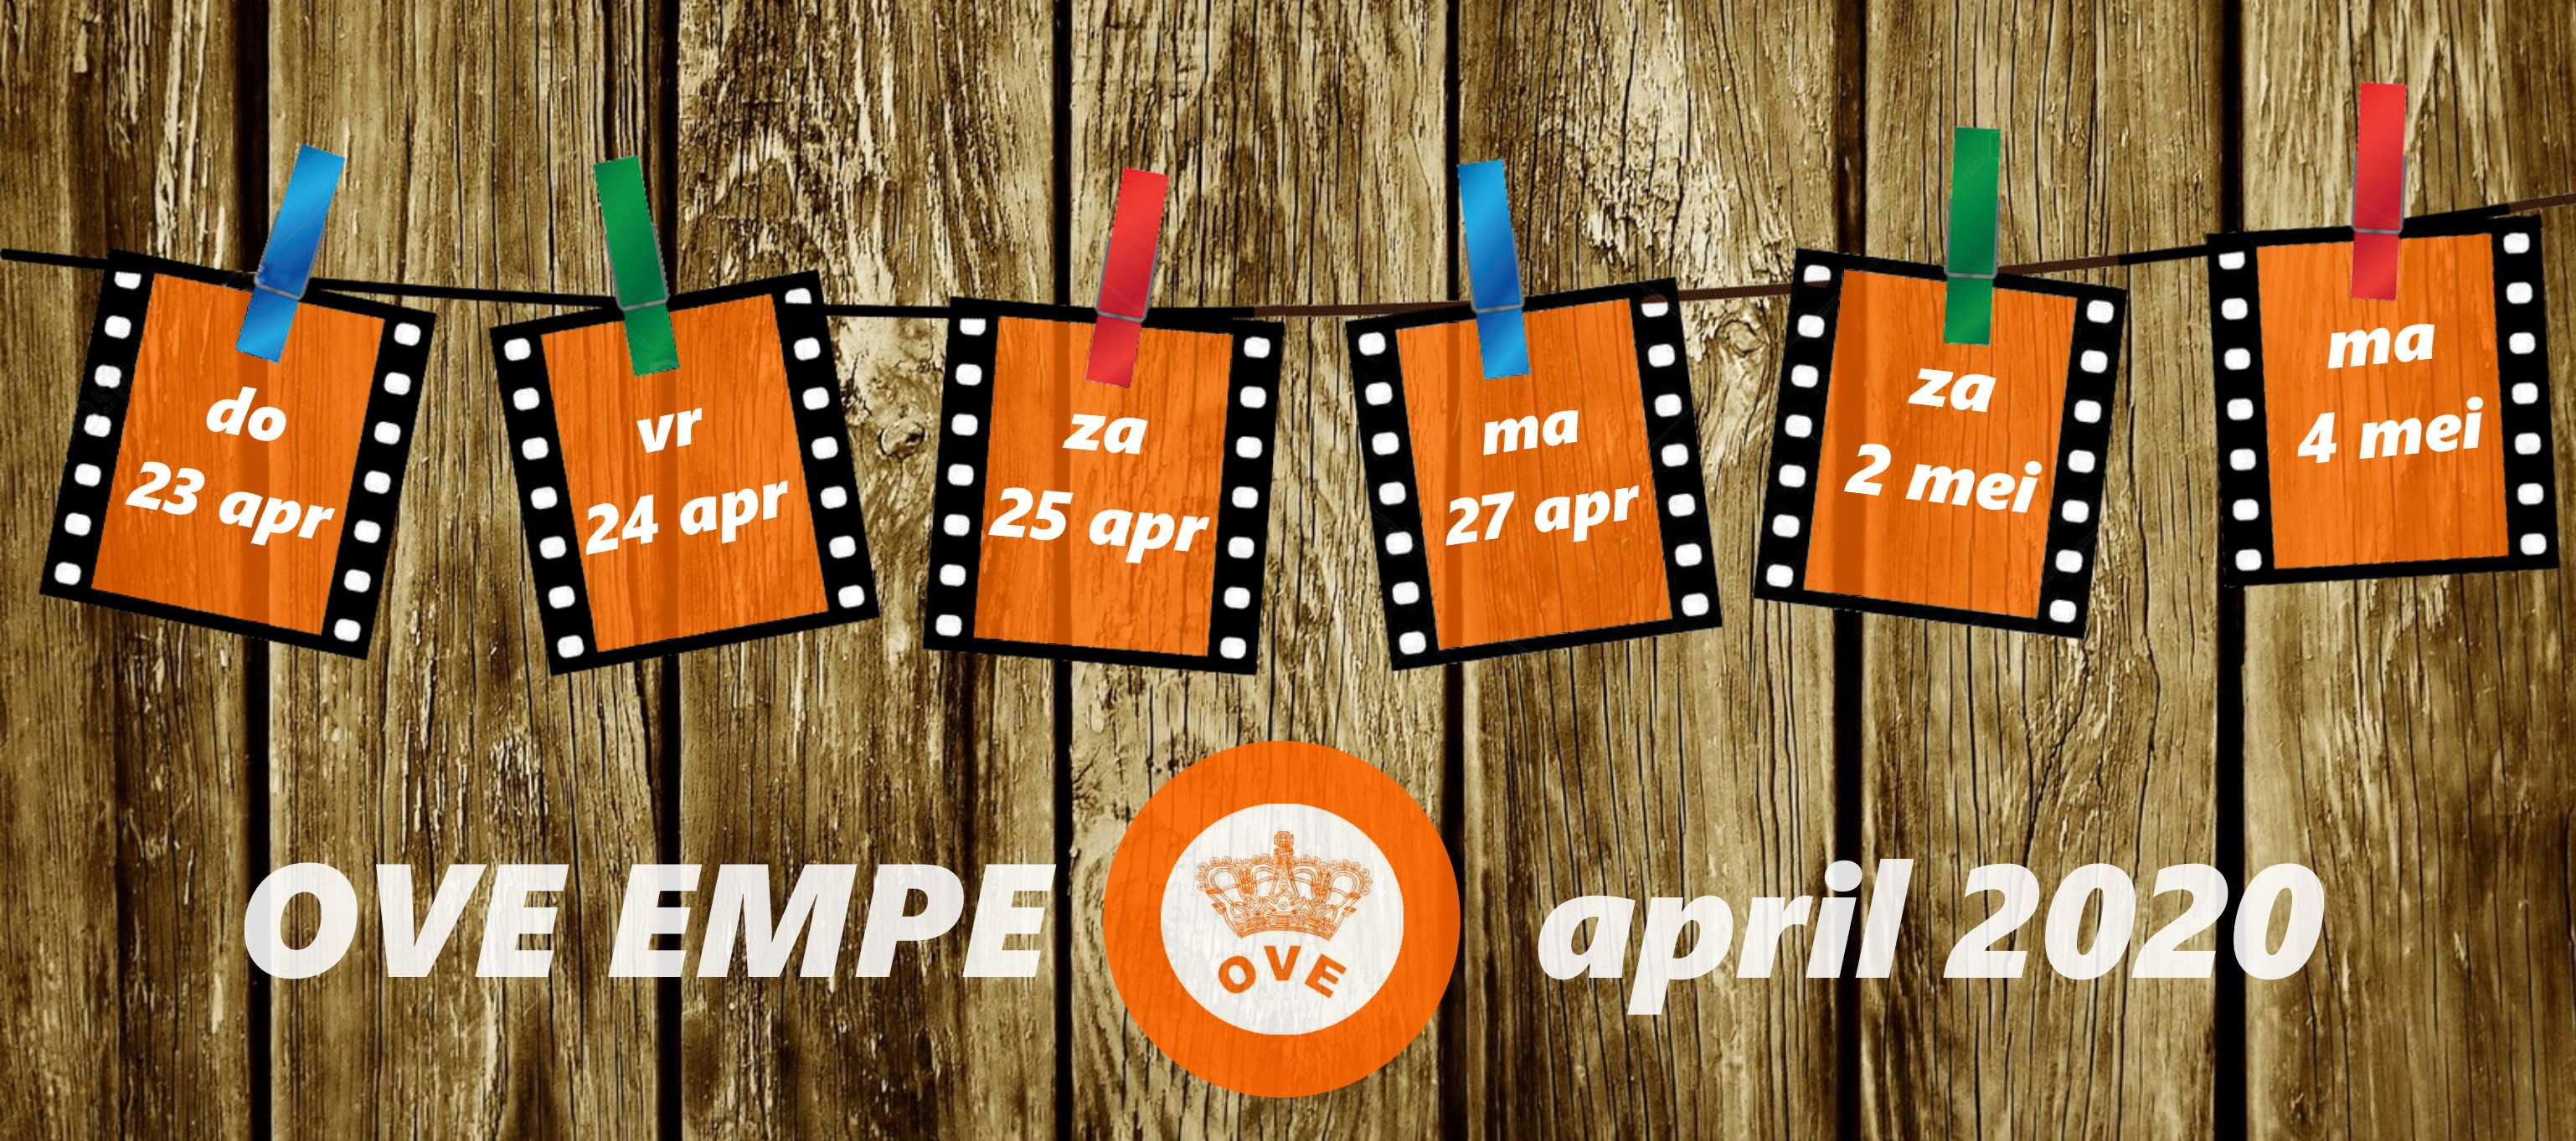 ove empe 2020 april mei